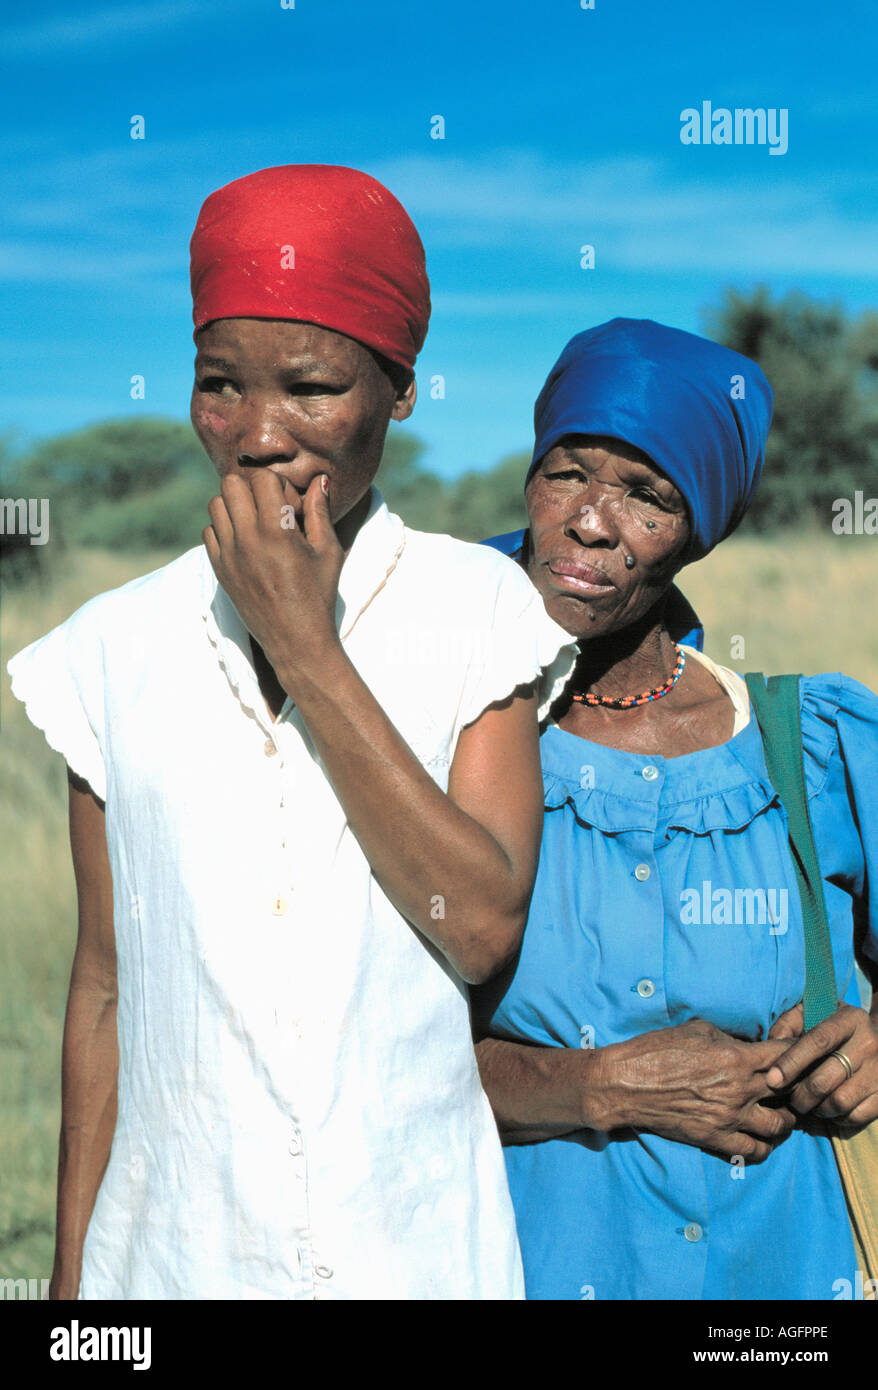 african female farmers undergoing humiliating treatment for unfaithfulness, rejected by society, Botswana - Stock Image